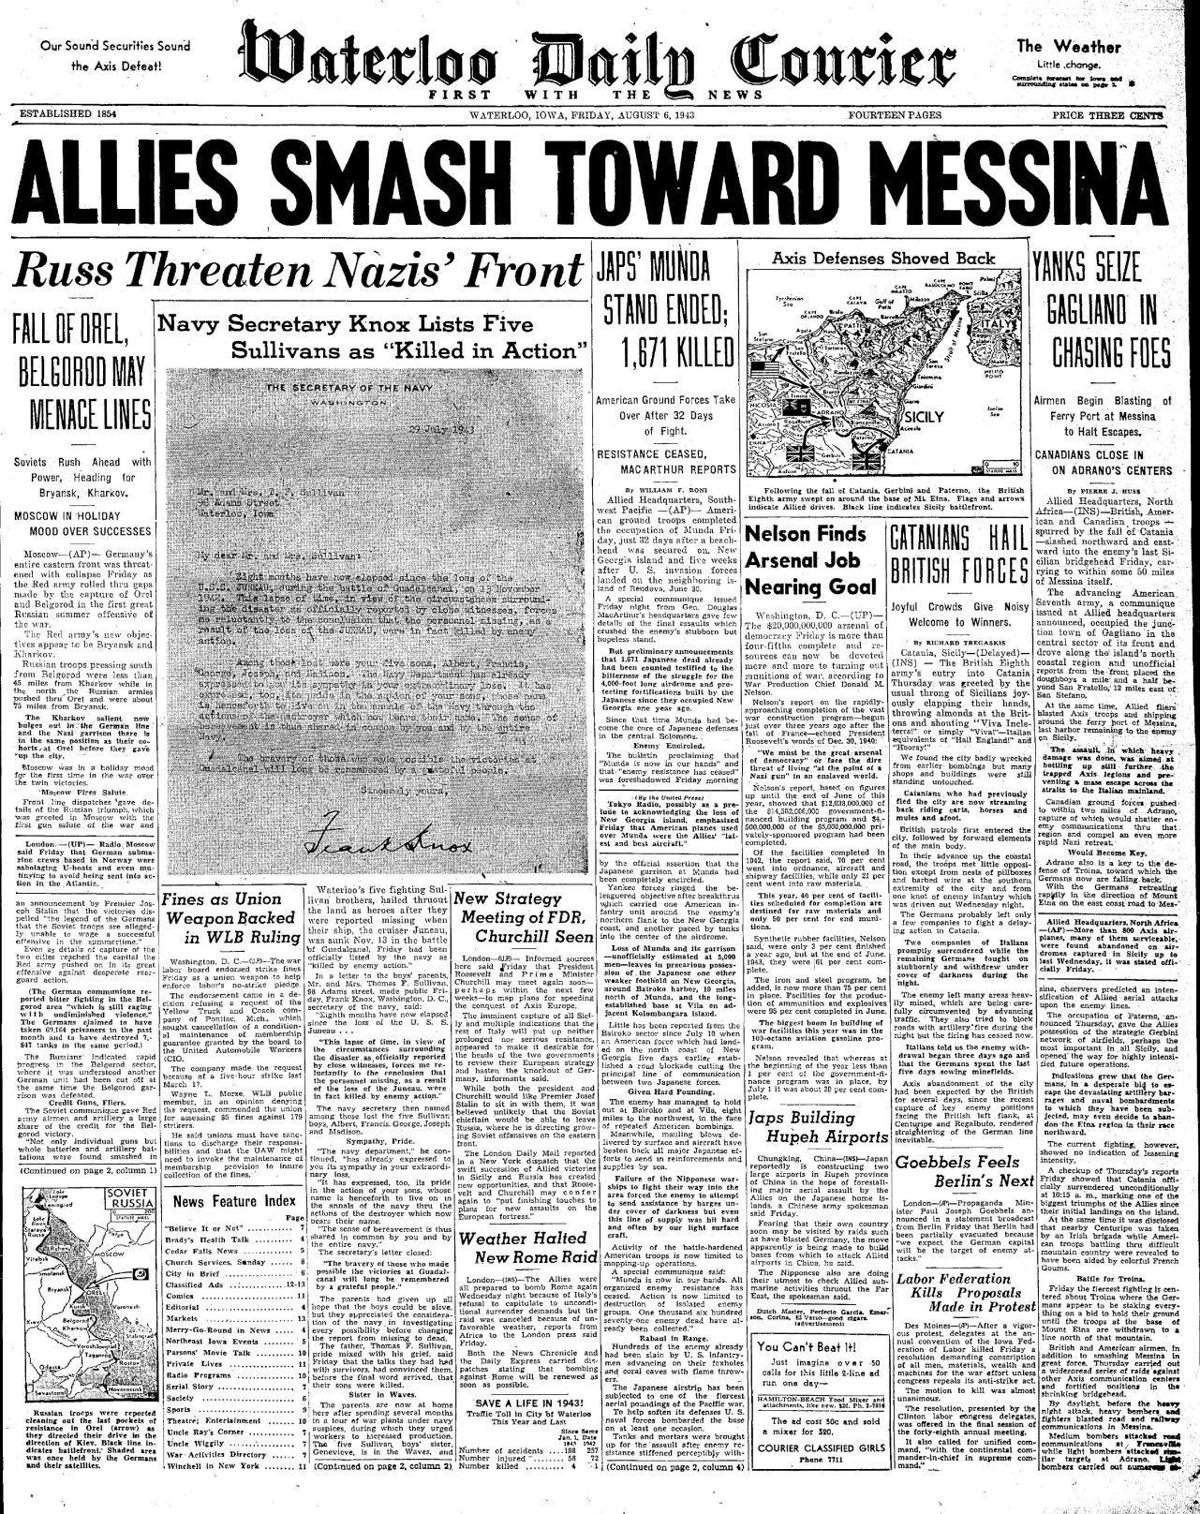 Courier Aug. 6, 1943